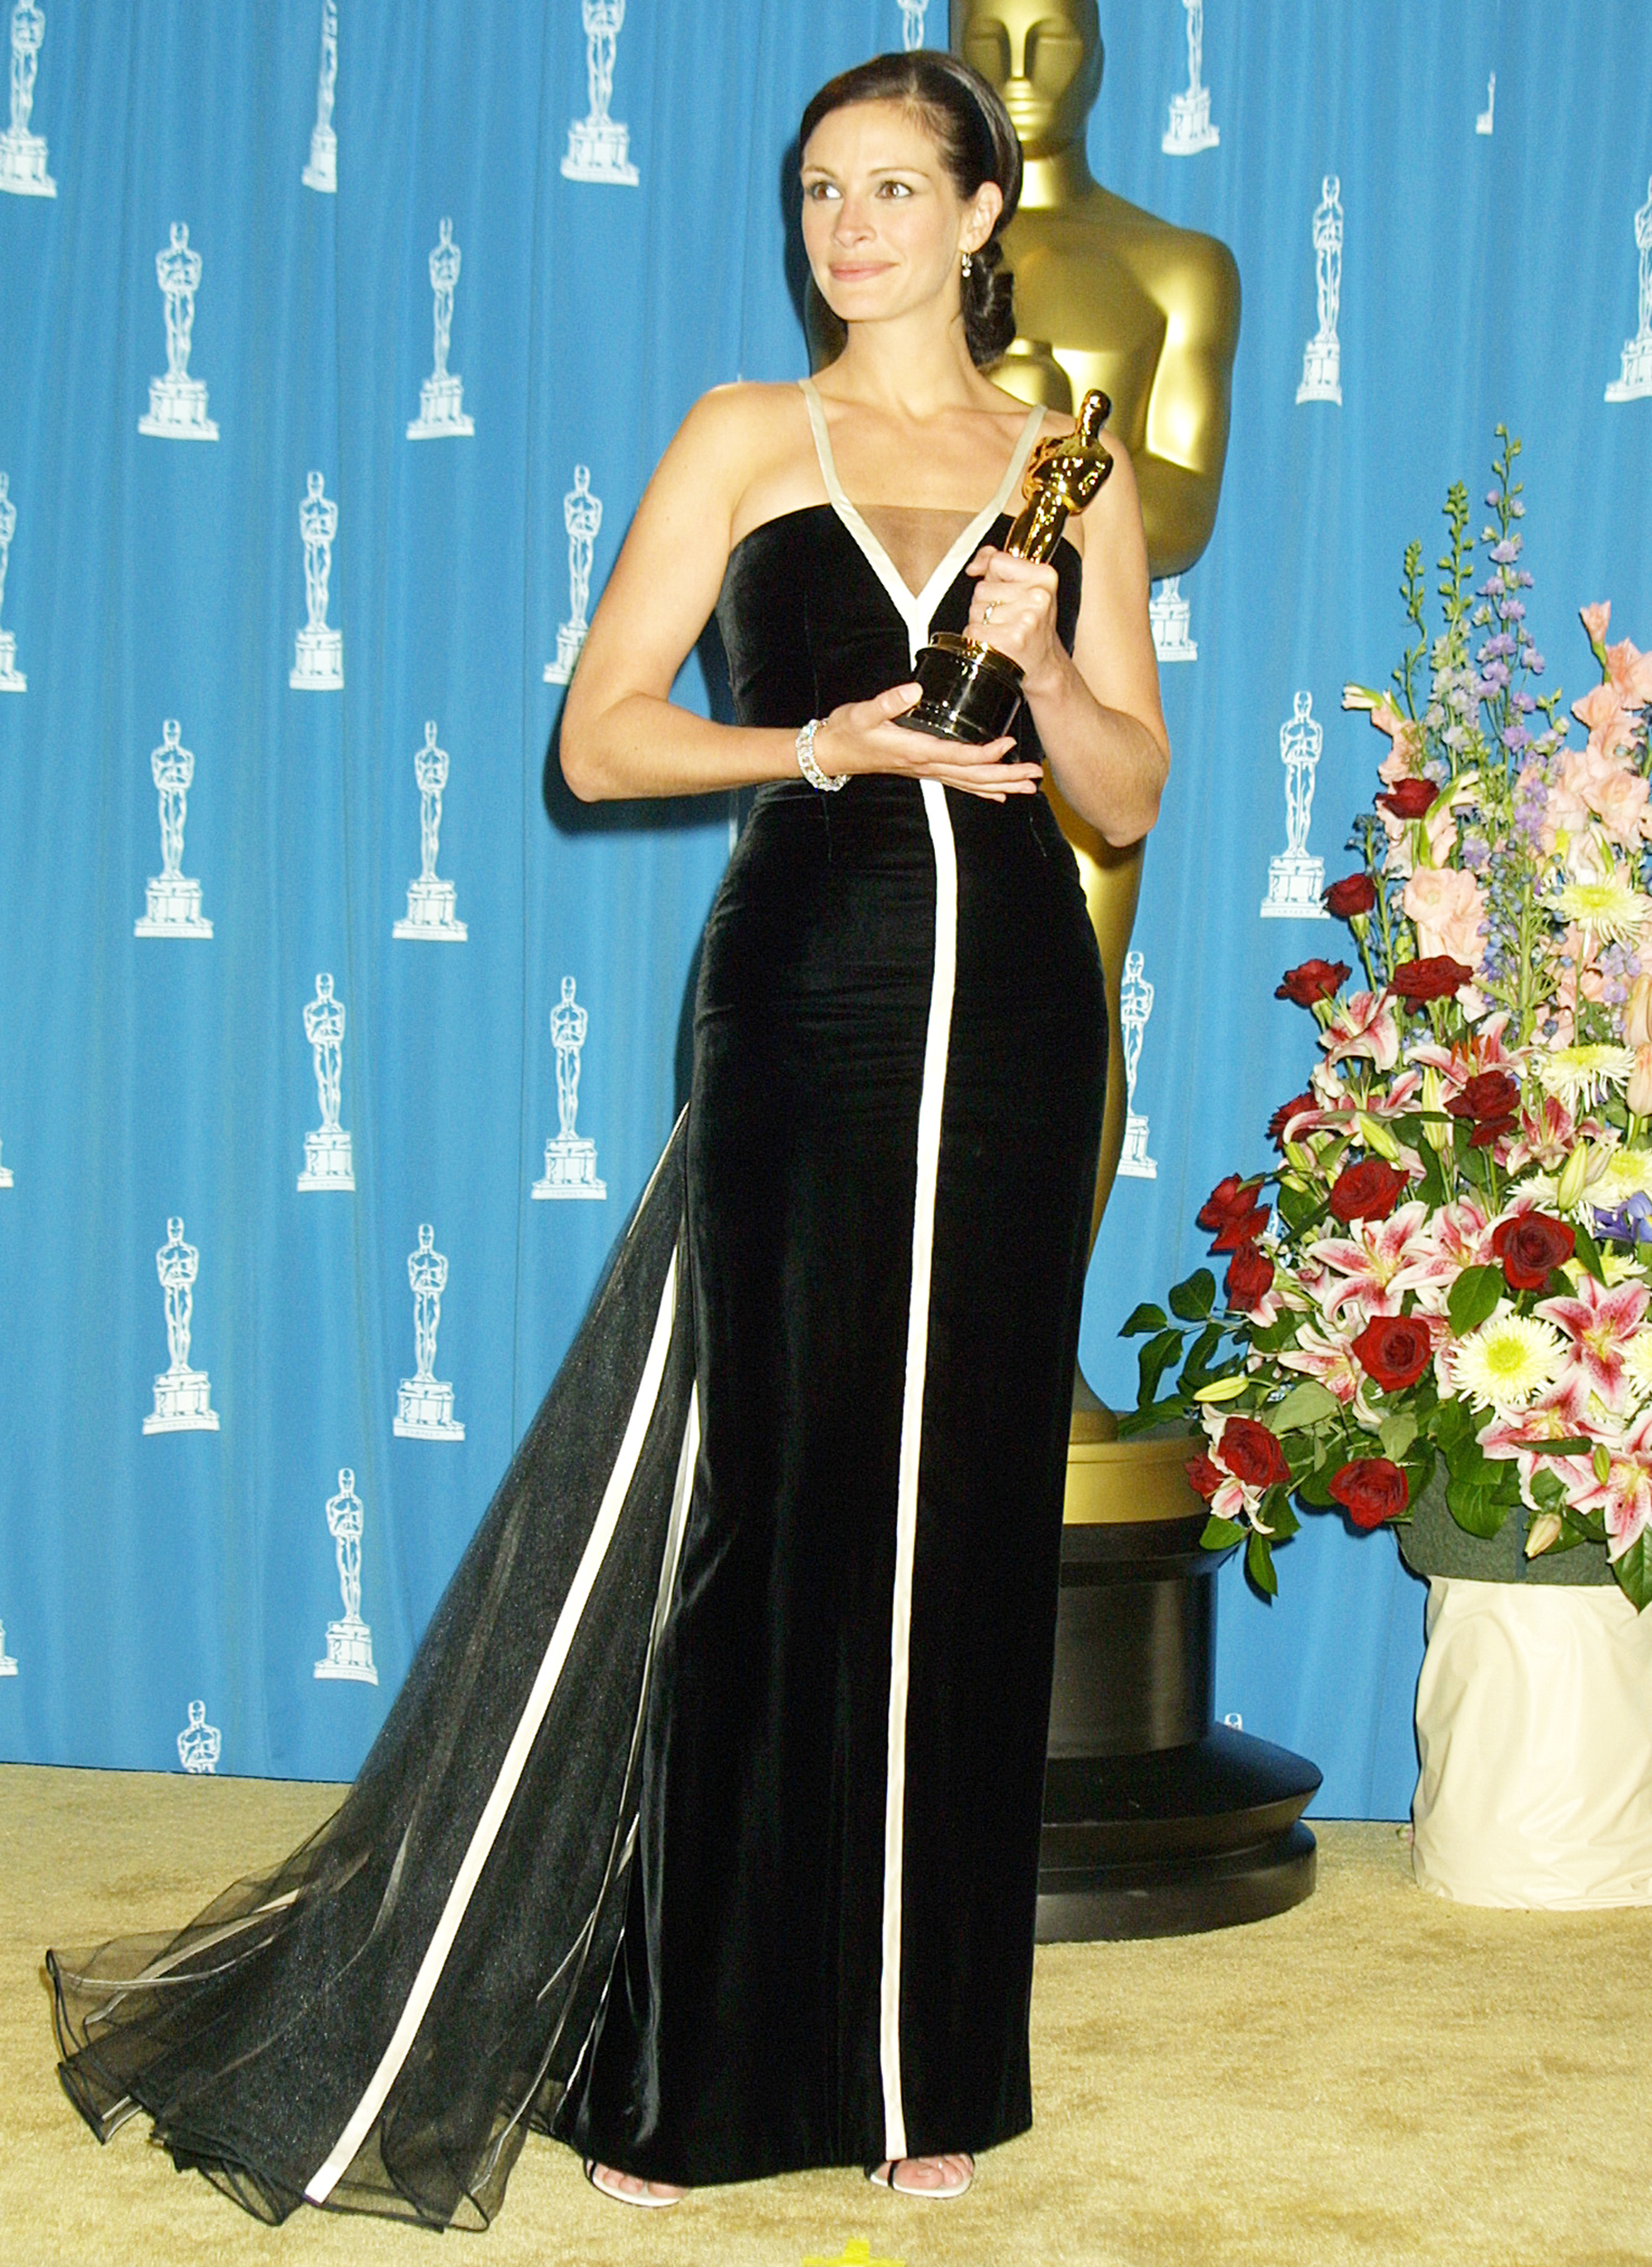 Julia Roberts winning Best Actress for her role Erin Brockovich at the Oscars in 2001